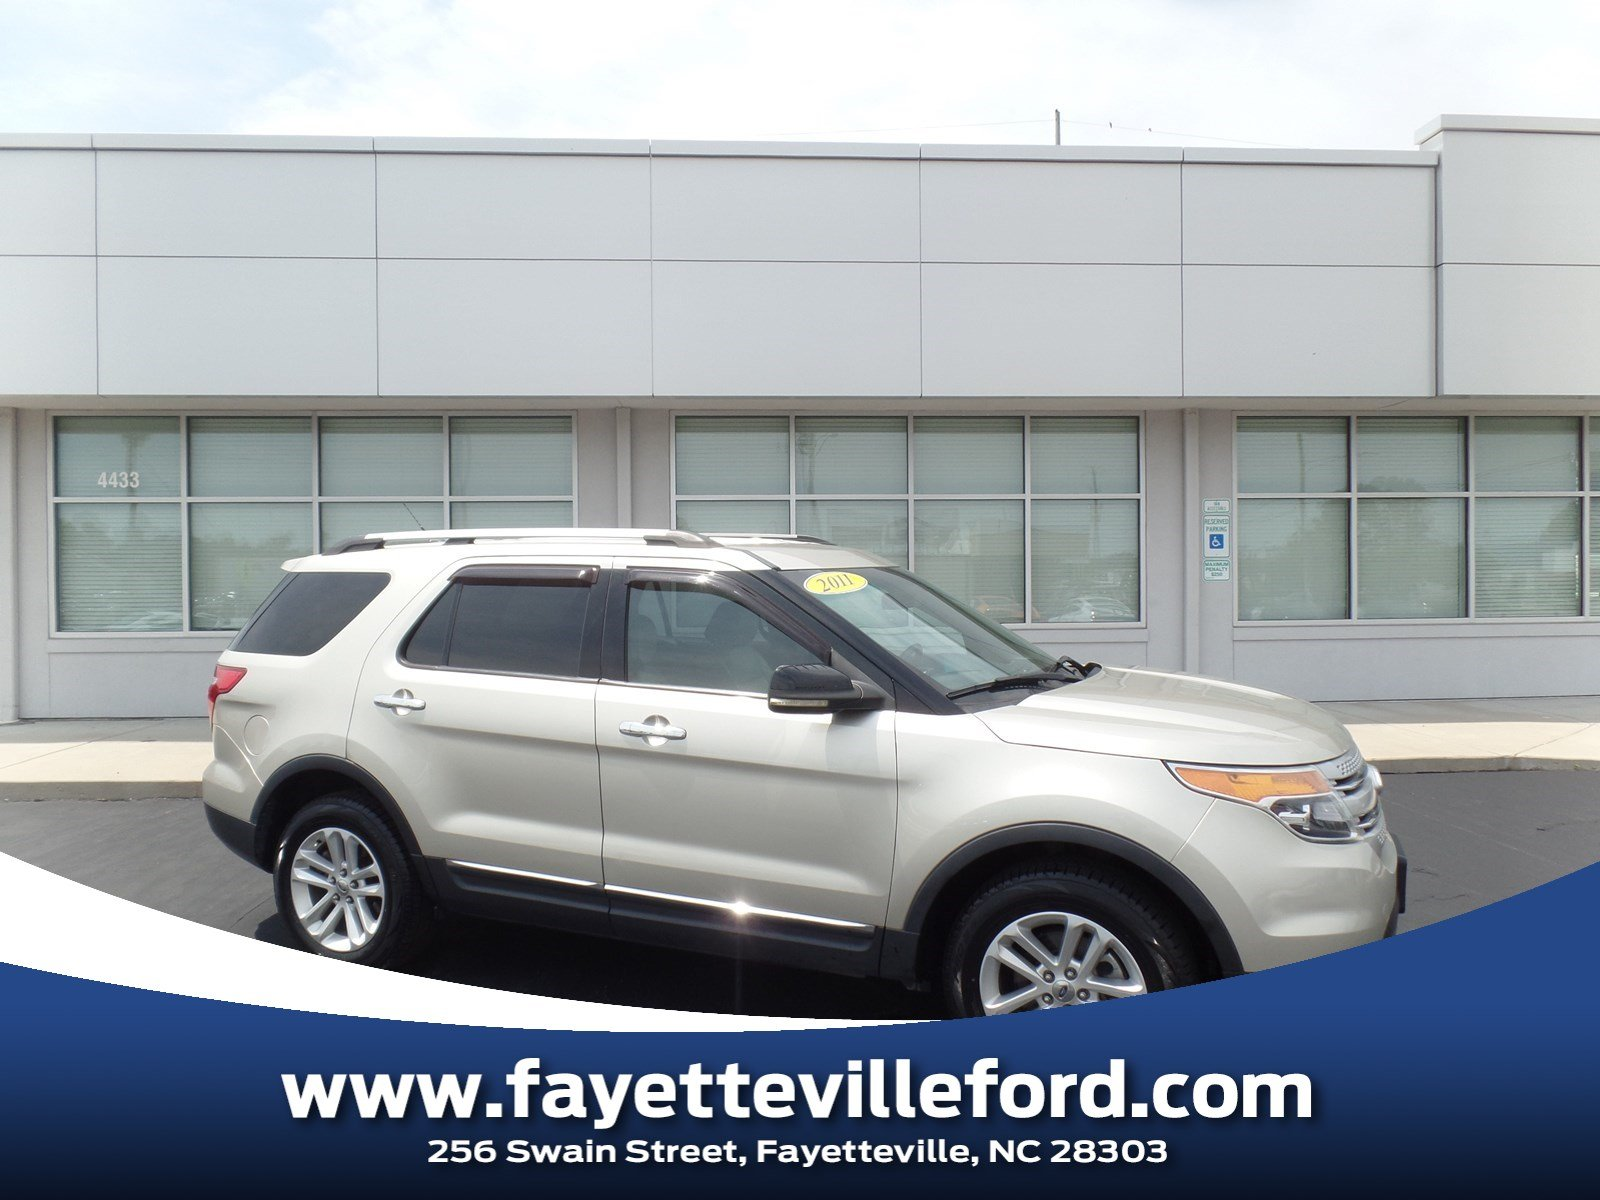 2011 Ford Explorer XLT SUV